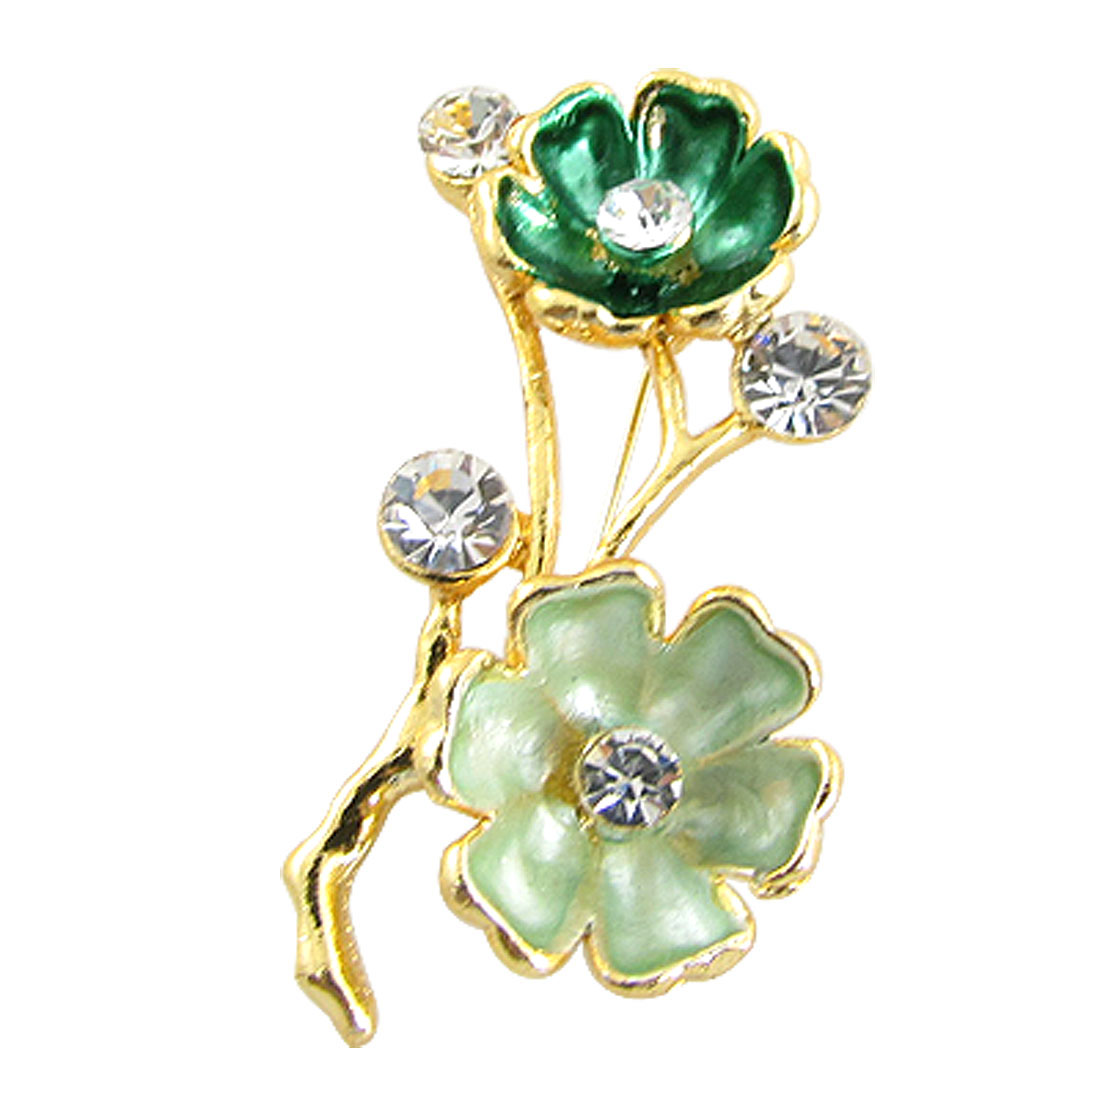 Two Tone Green Plum Blossom Gold Tone Metal Pin Brooch